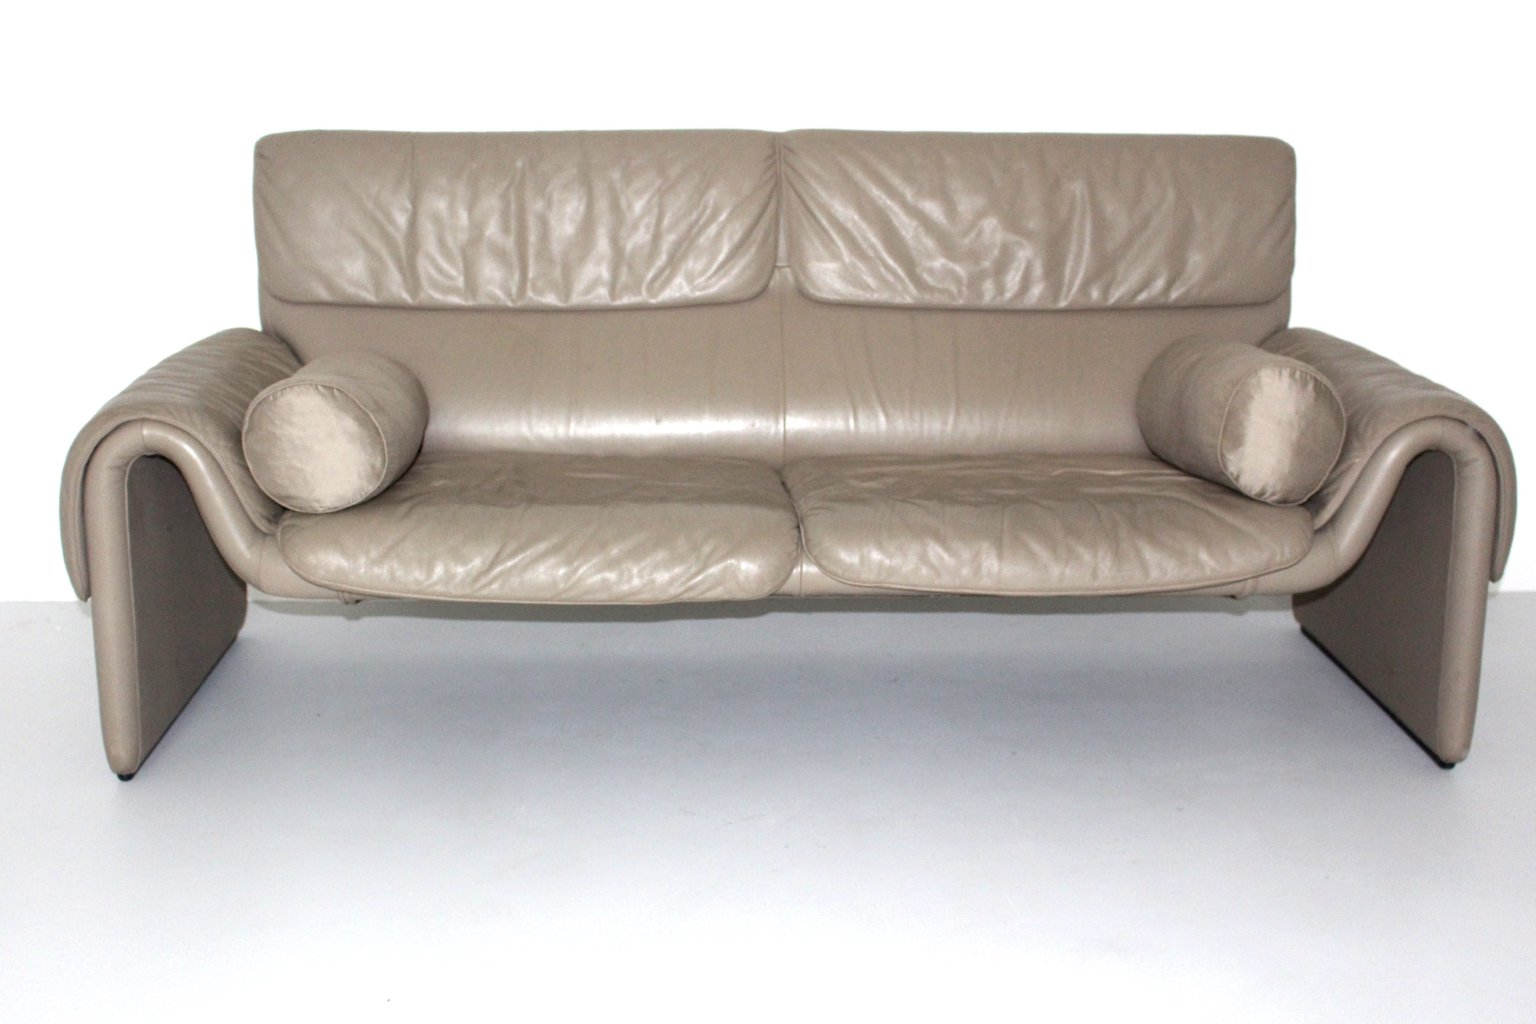 vintage ds 2011 leather sofa from de sede 1980s for sale. Black Bedroom Furniture Sets. Home Design Ideas